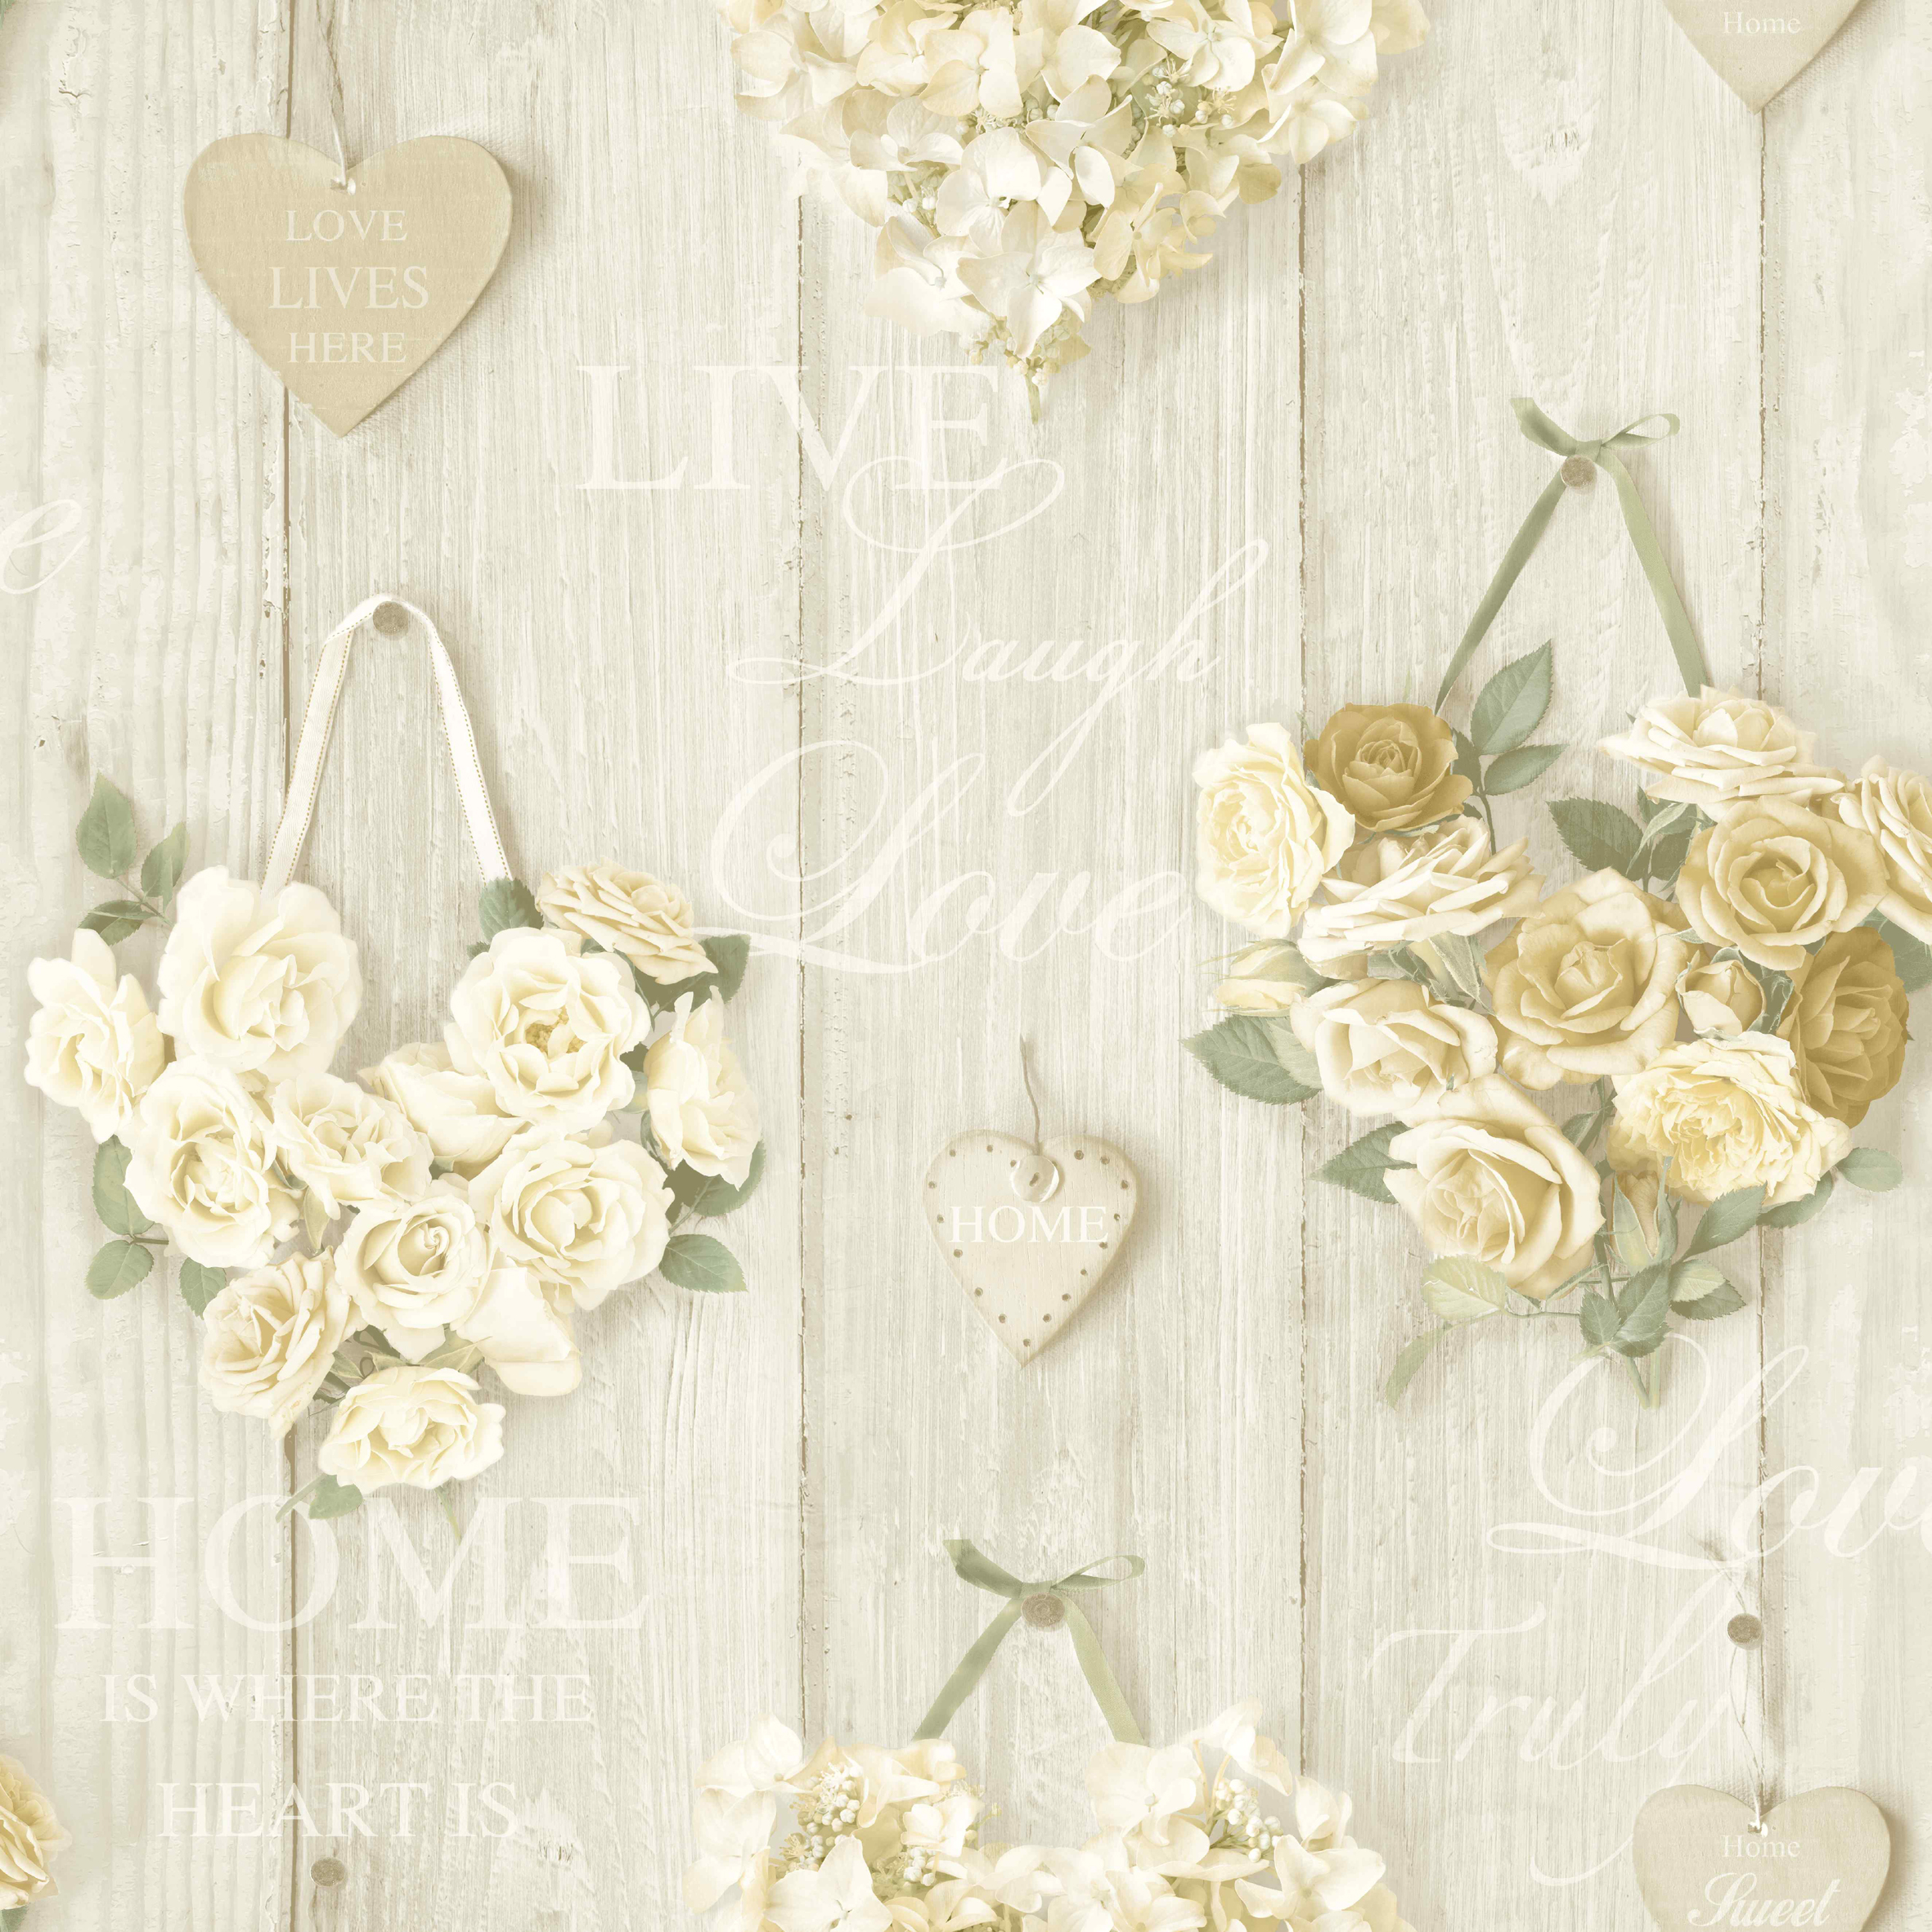 ideco home vintage hearts wallpaper a14501 cream cut price wallpaper crewe. Black Bedroom Furniture Sets. Home Design Ideas